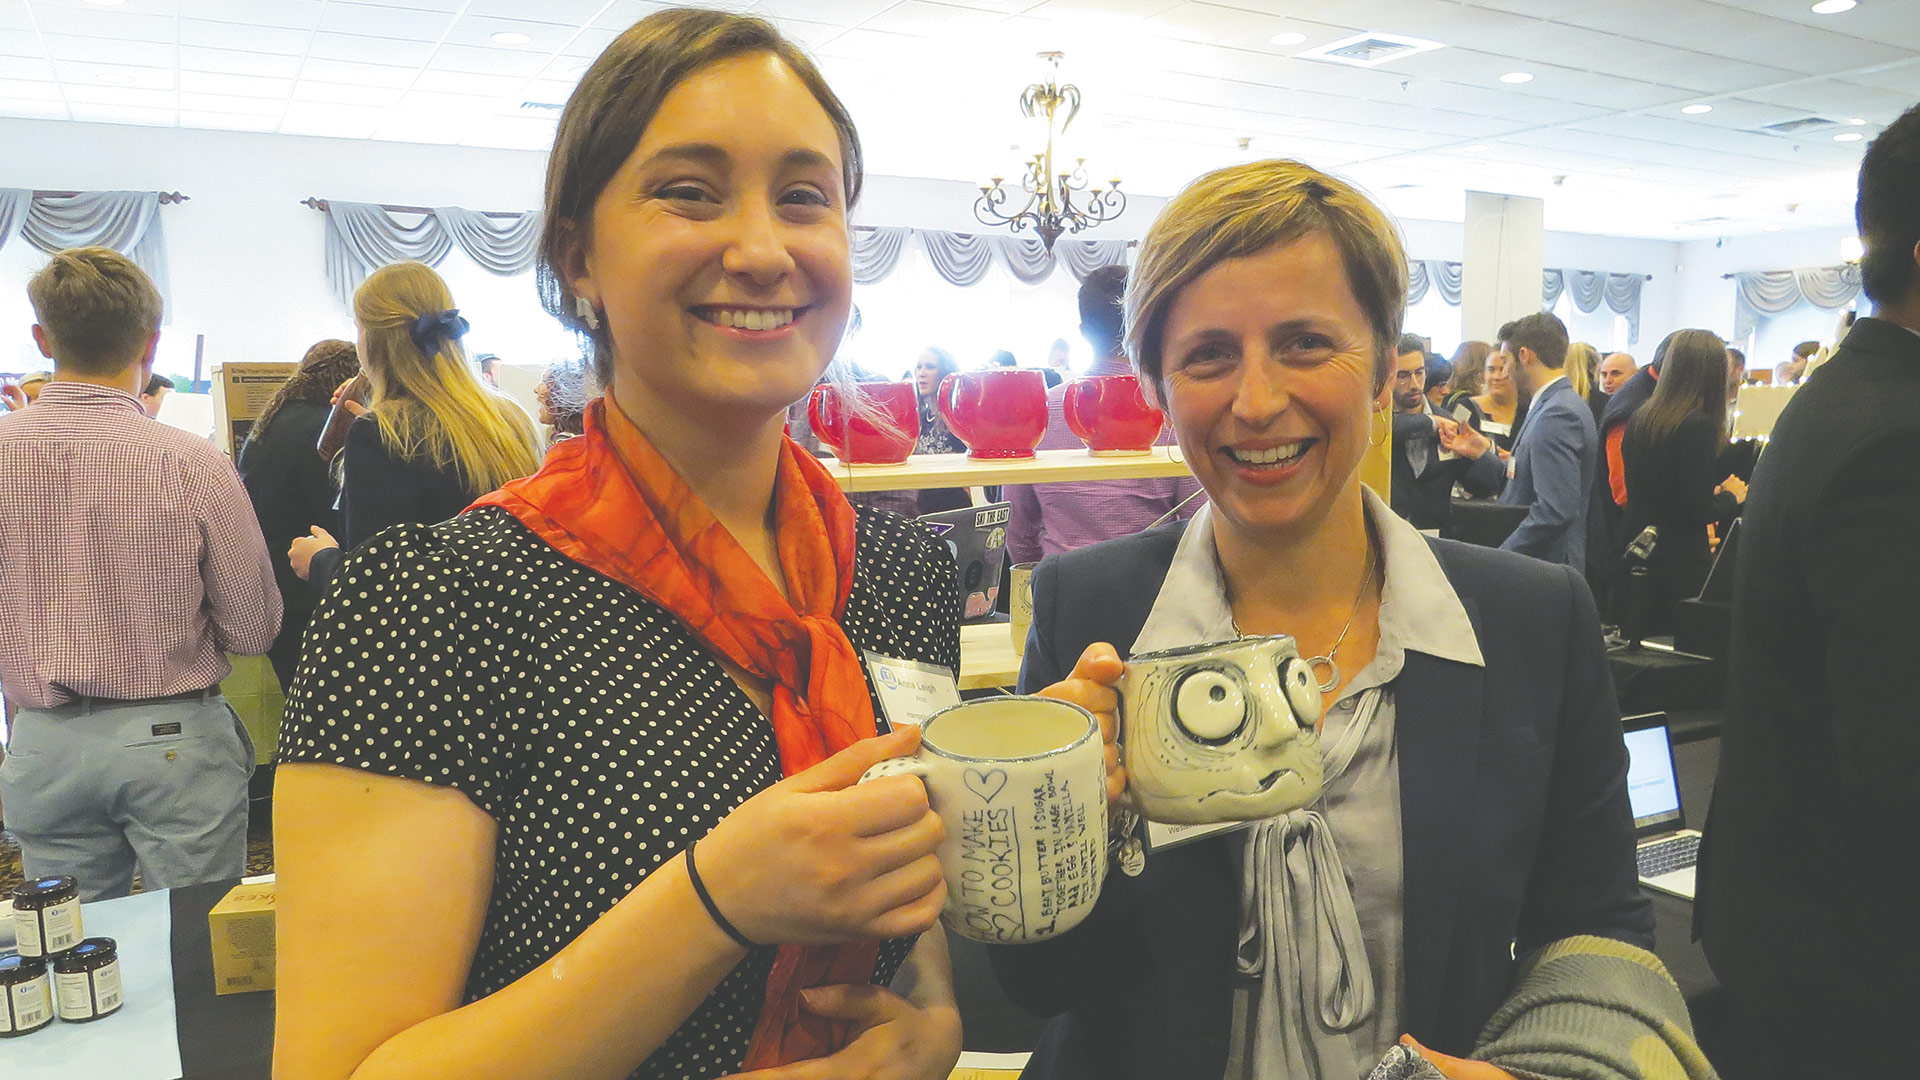 Anna Aron (left), a Hampshire College student and founder of Anna Leigh Pottery, shows some of her works to Katie Allan Zobel, president and CEO of the Community Foundation